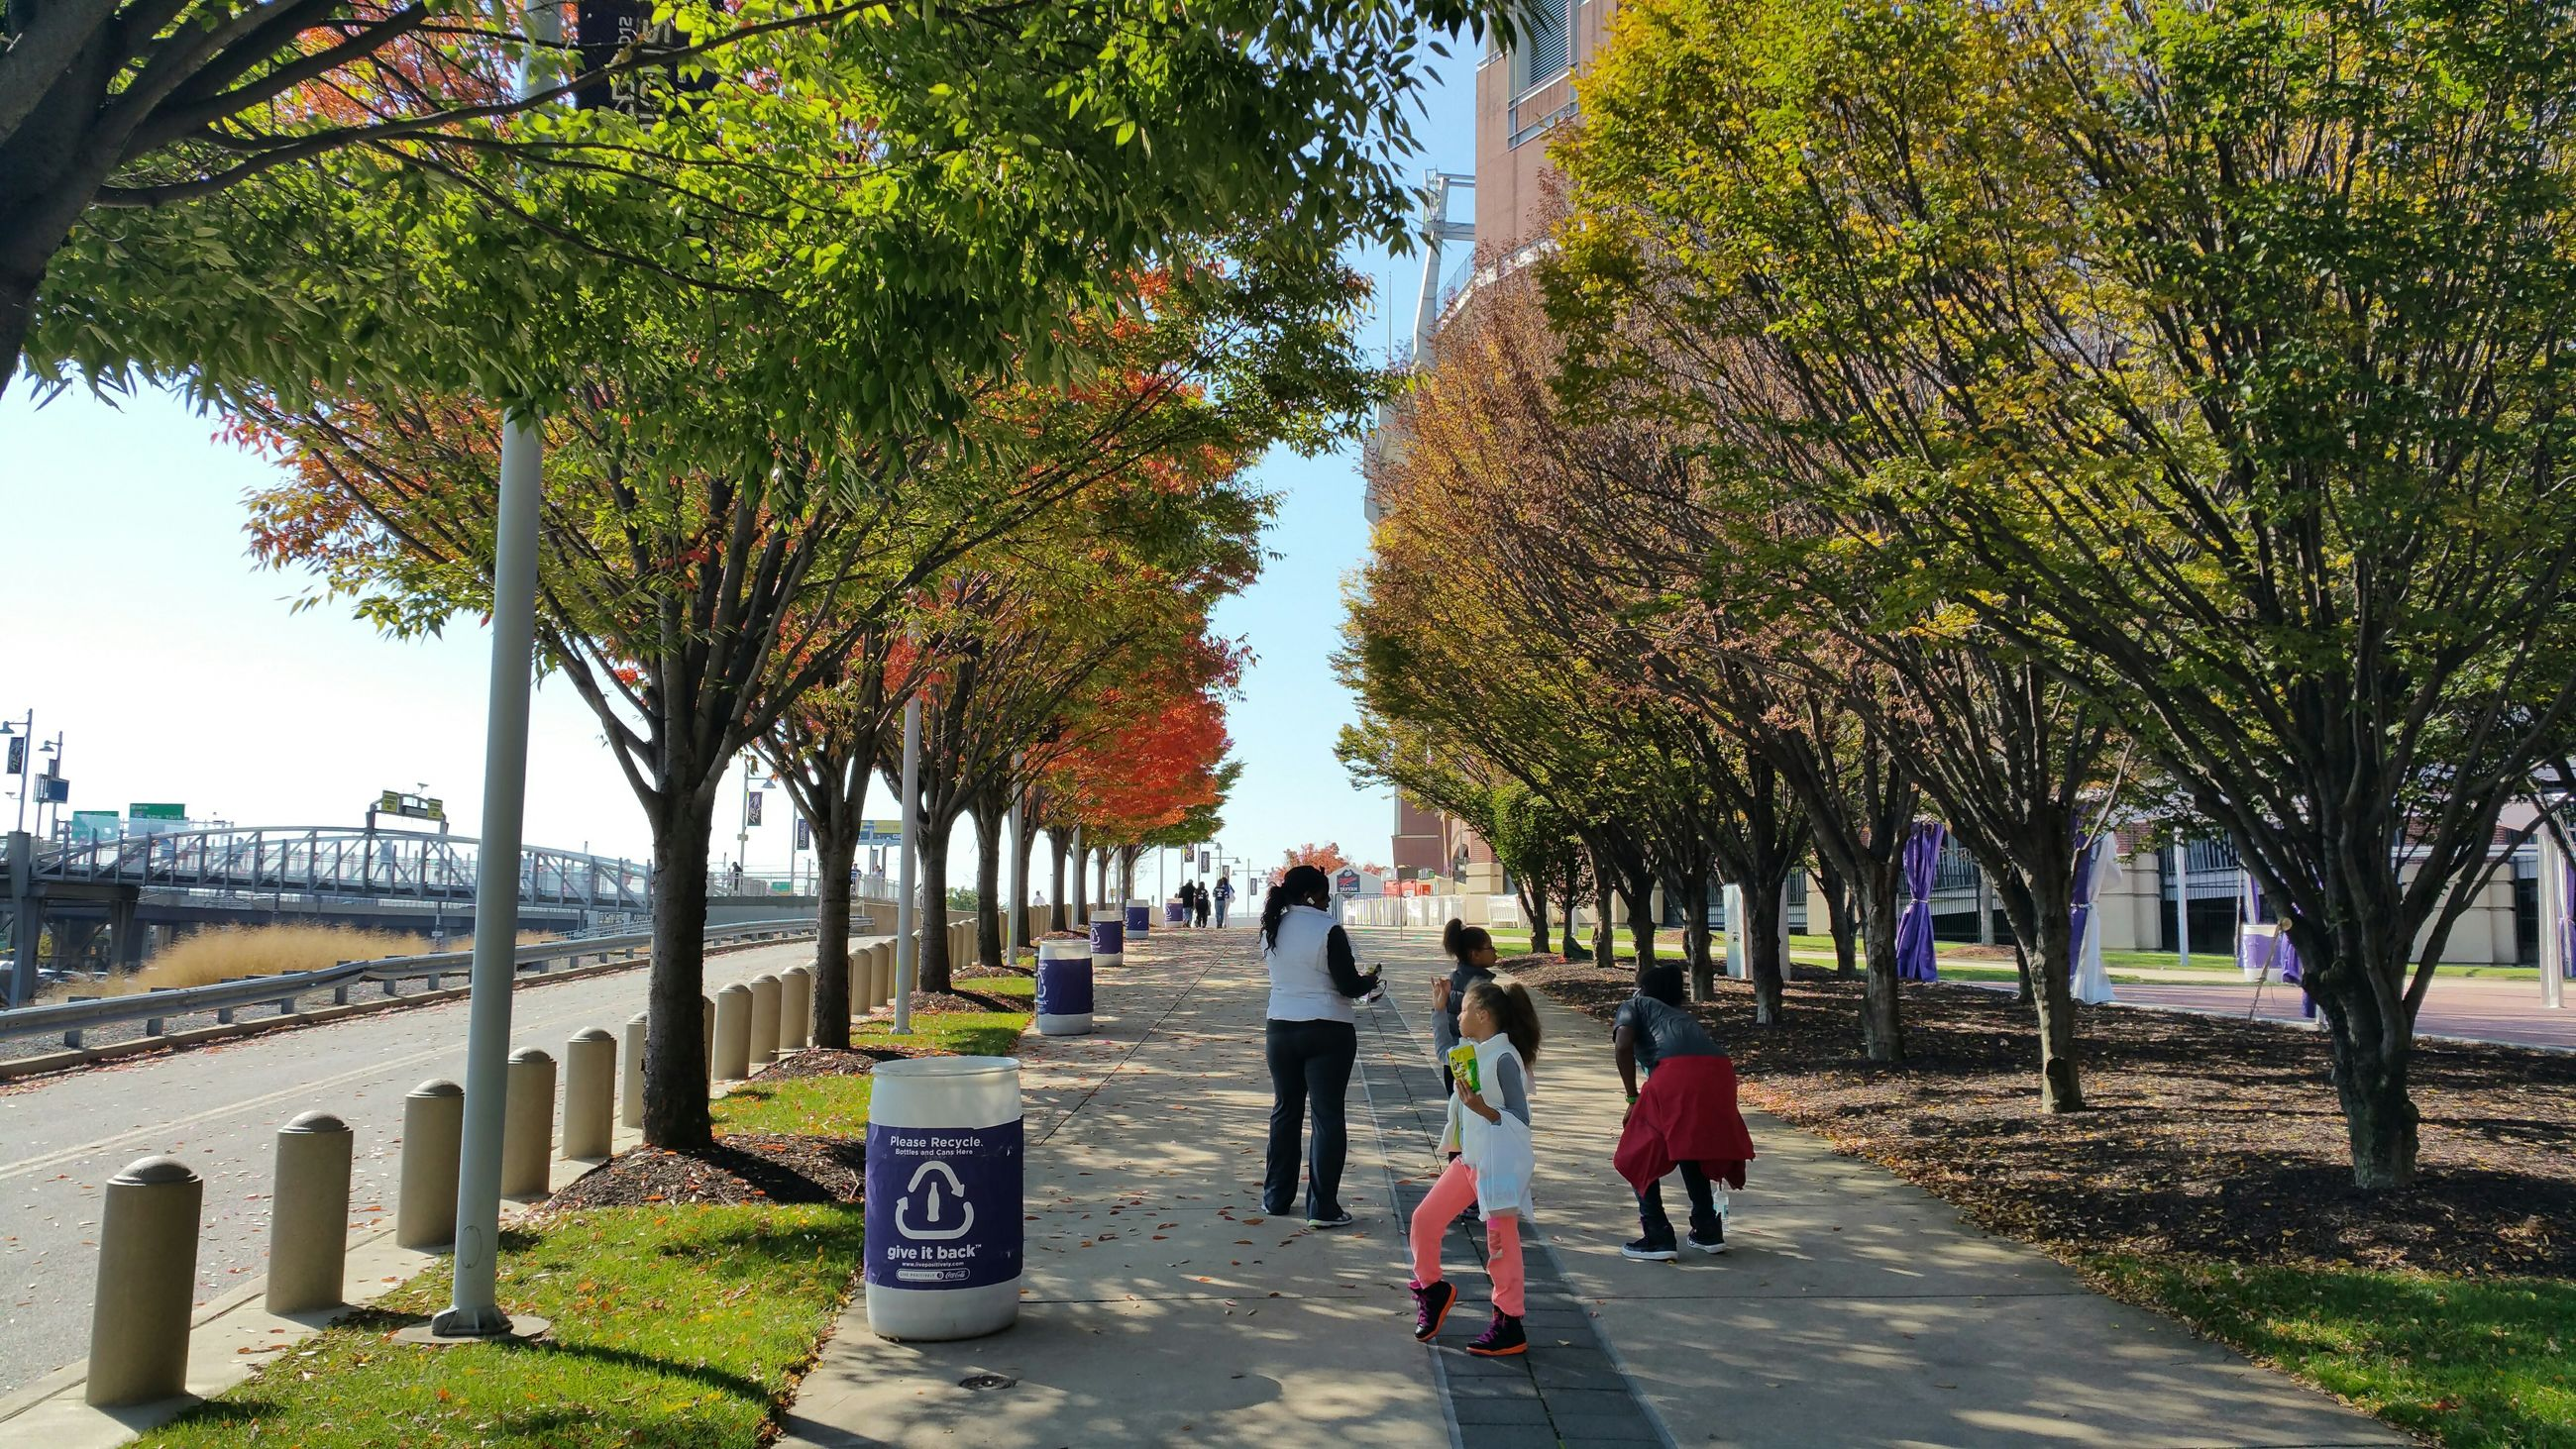 tree, lifestyles, walking, rear view, men, leisure activity, person, full length, the way forward, street, footpath, city, casual clothing, togetherness, treelined, city life, park - man made space, built structure